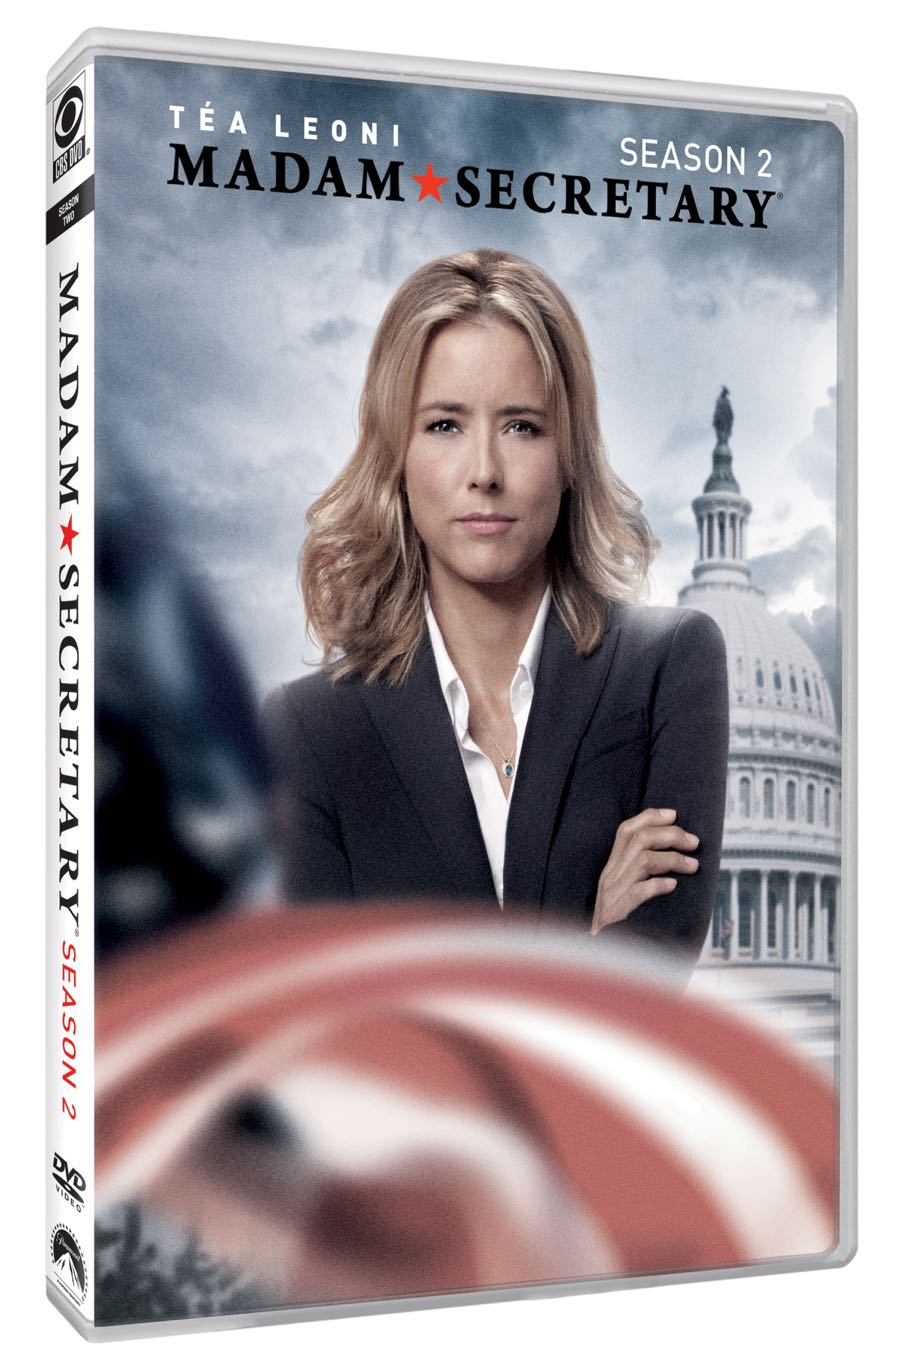 MADAM SECRETARY Season 2 DVD